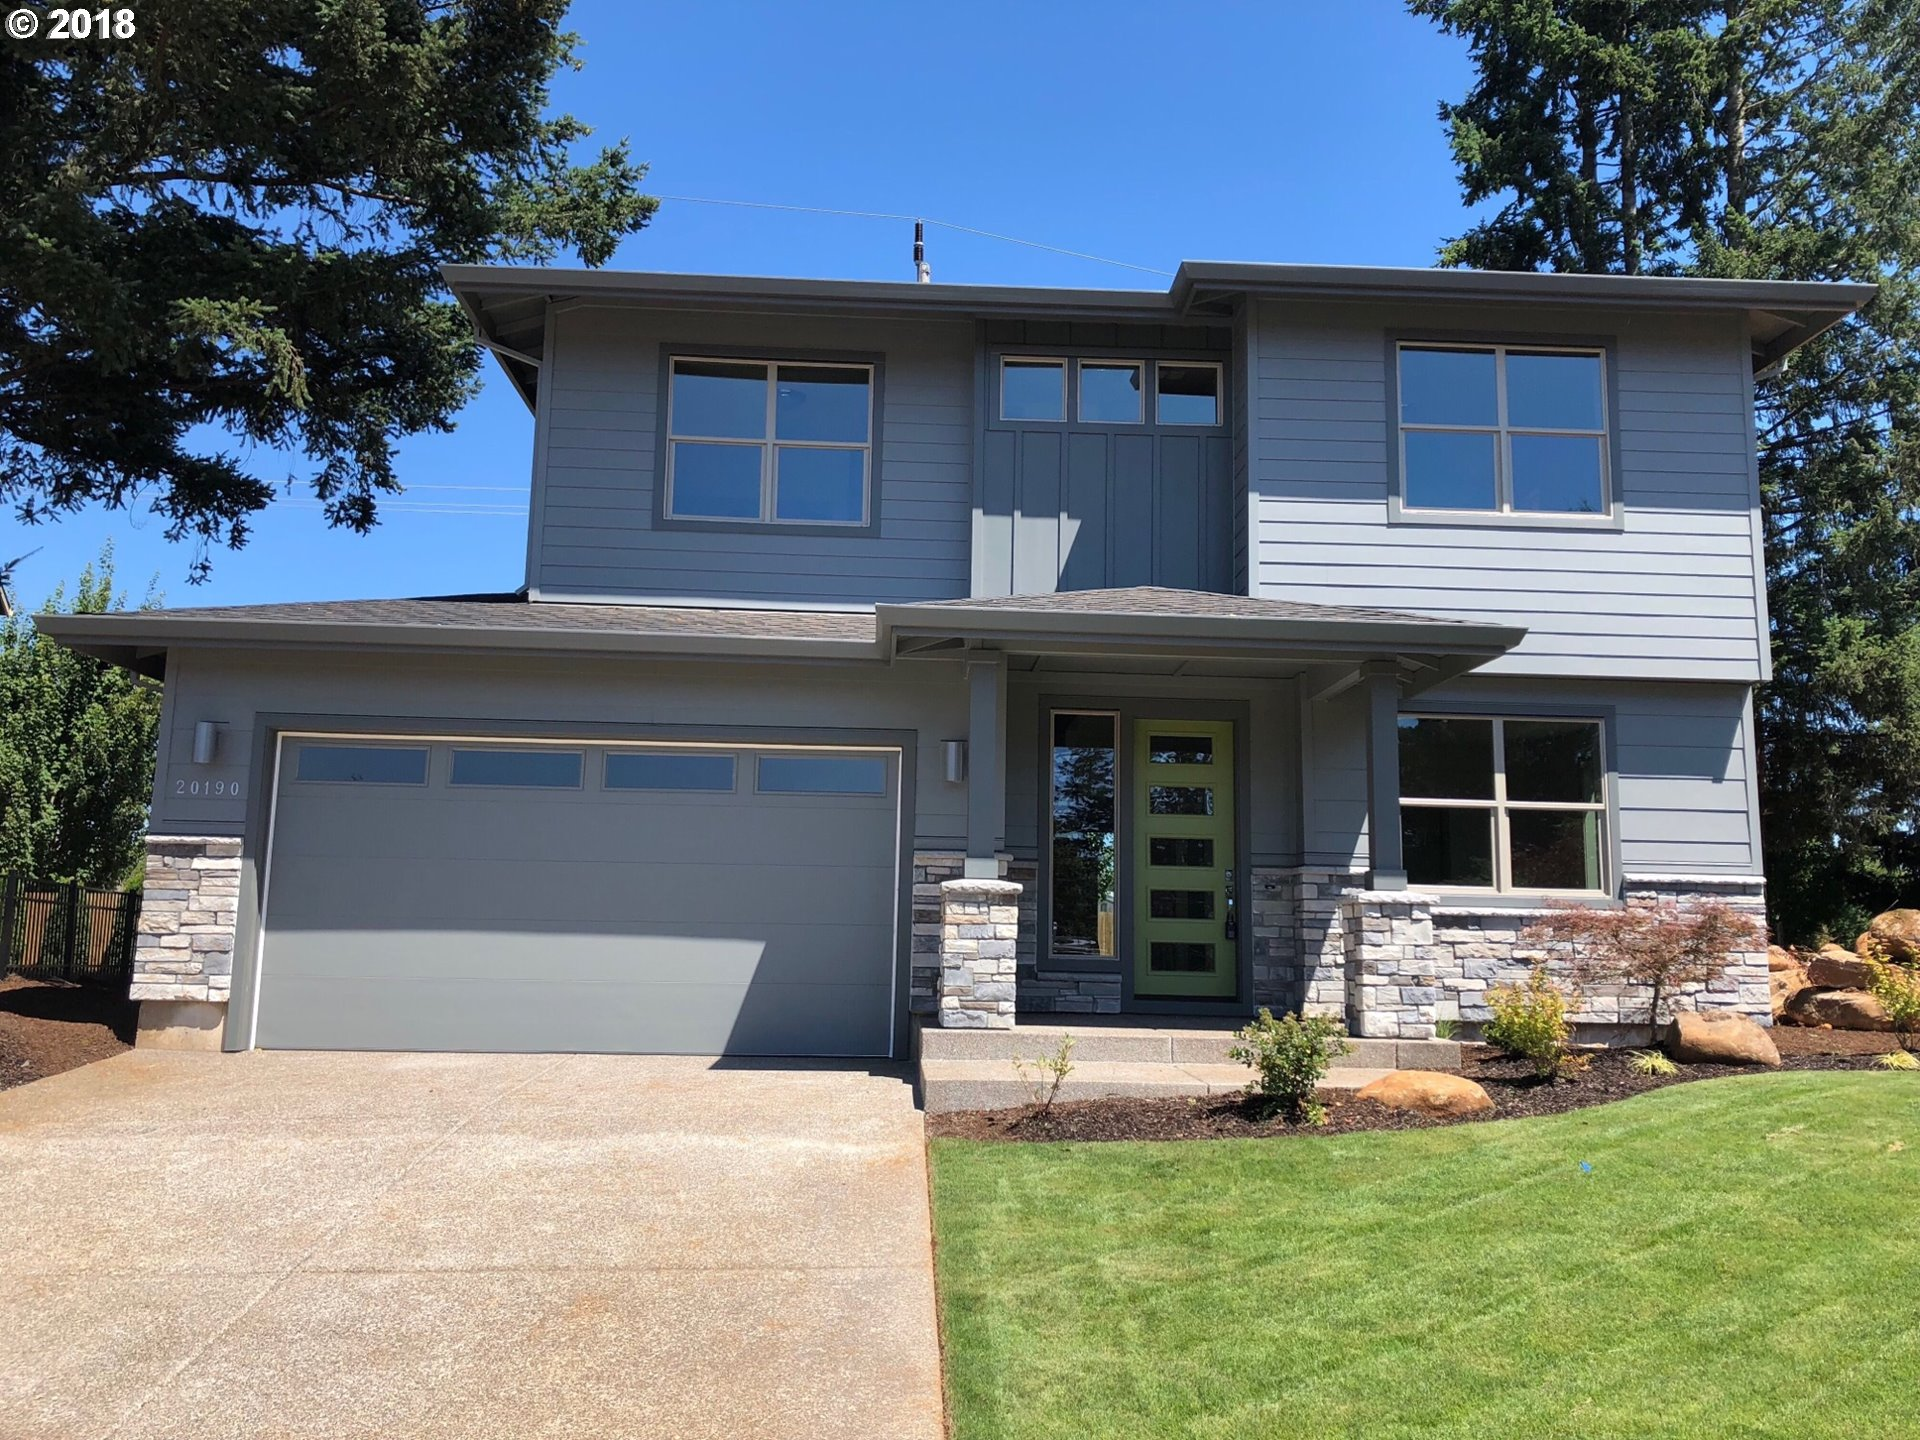 20190 Kinslie CT Oregon City, OR 97045 - MLS #: 18616698